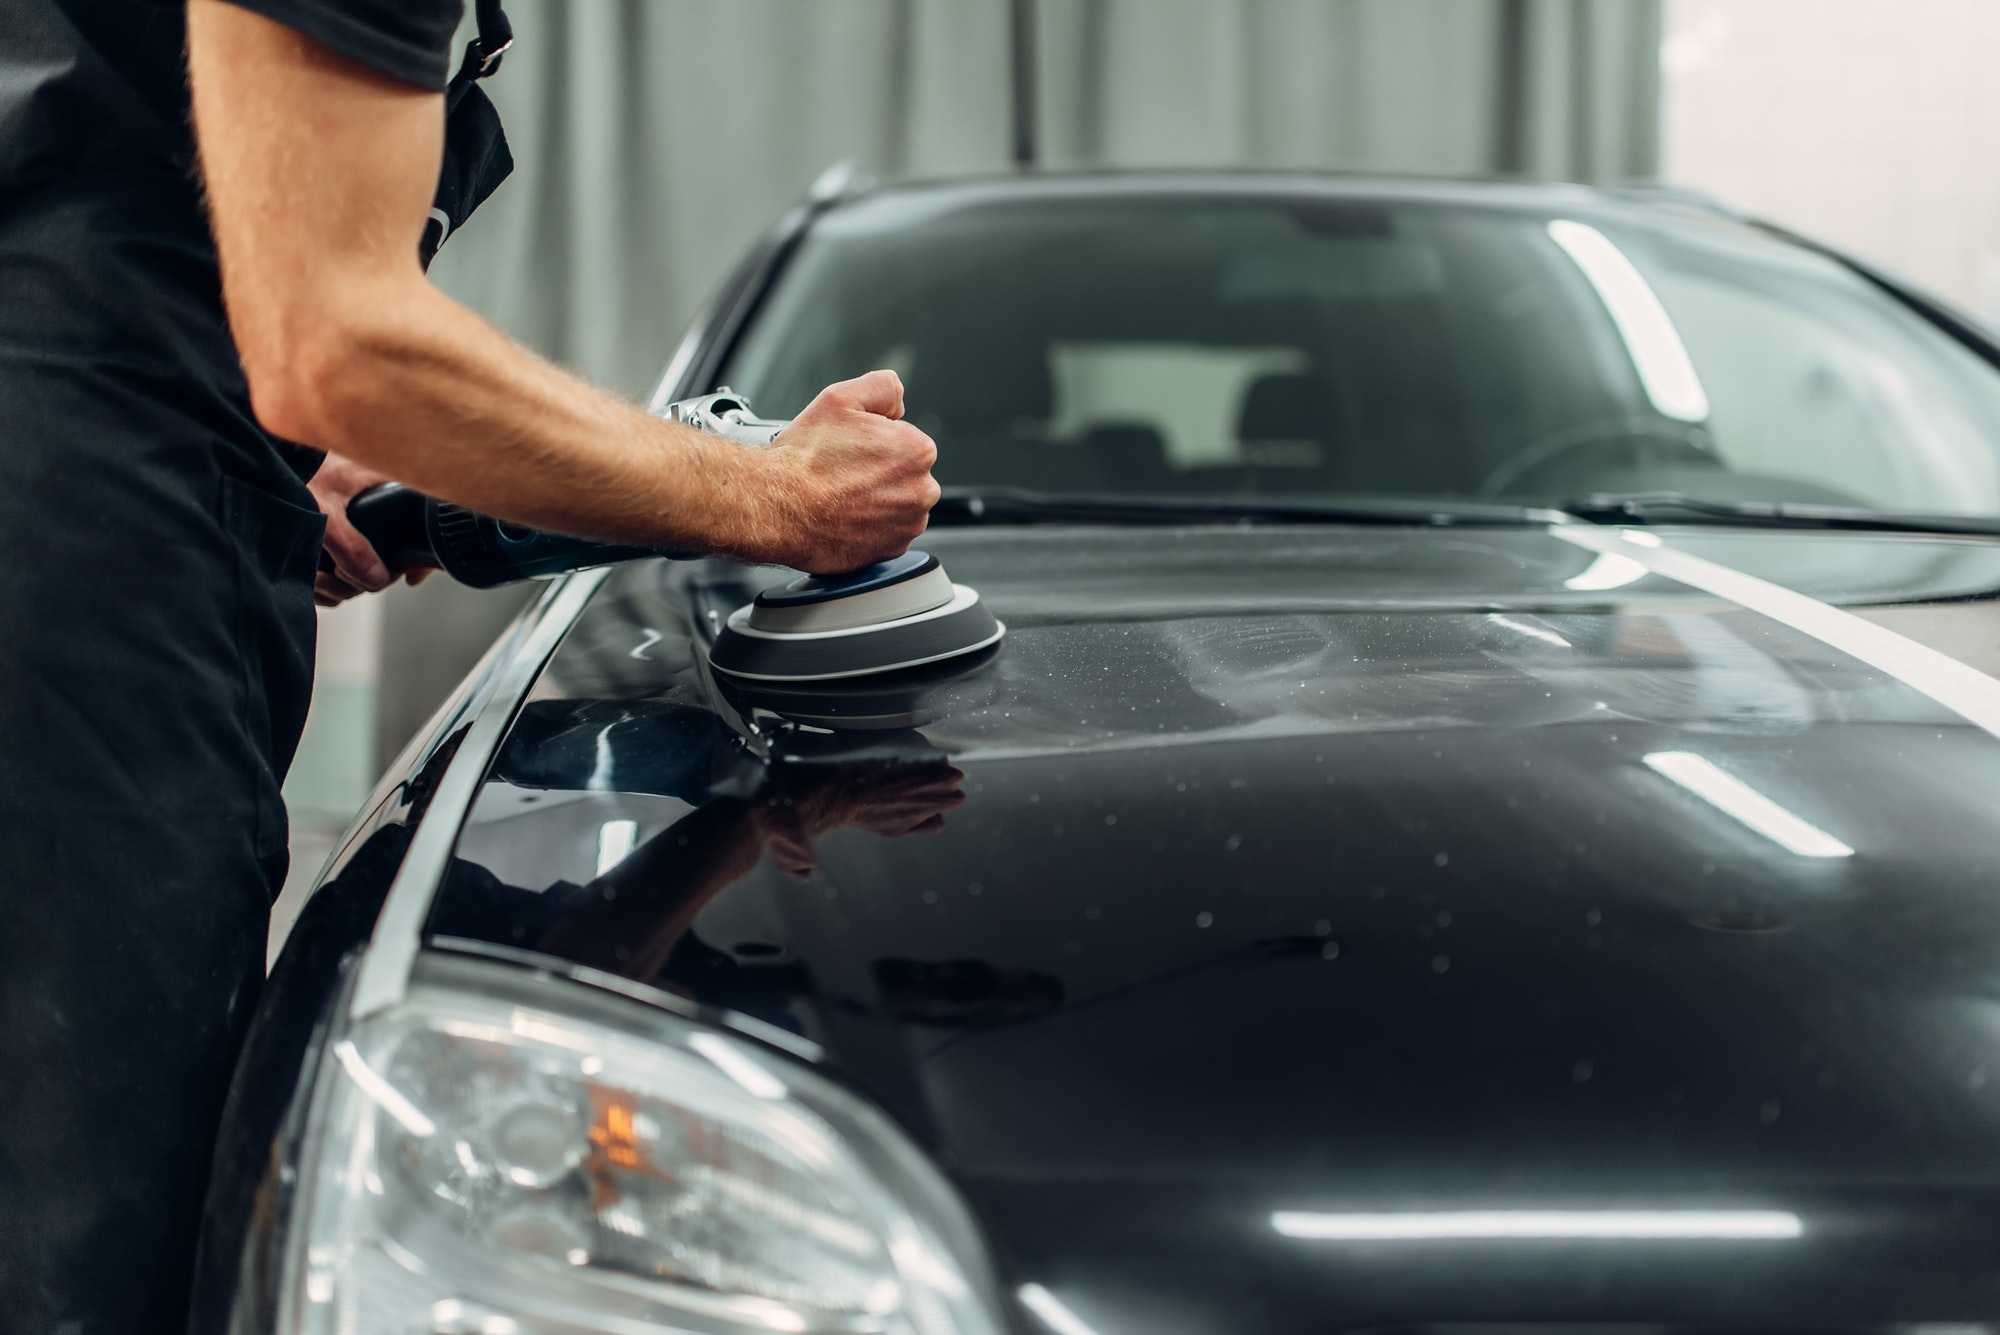 Male person with polishing machine cleans car